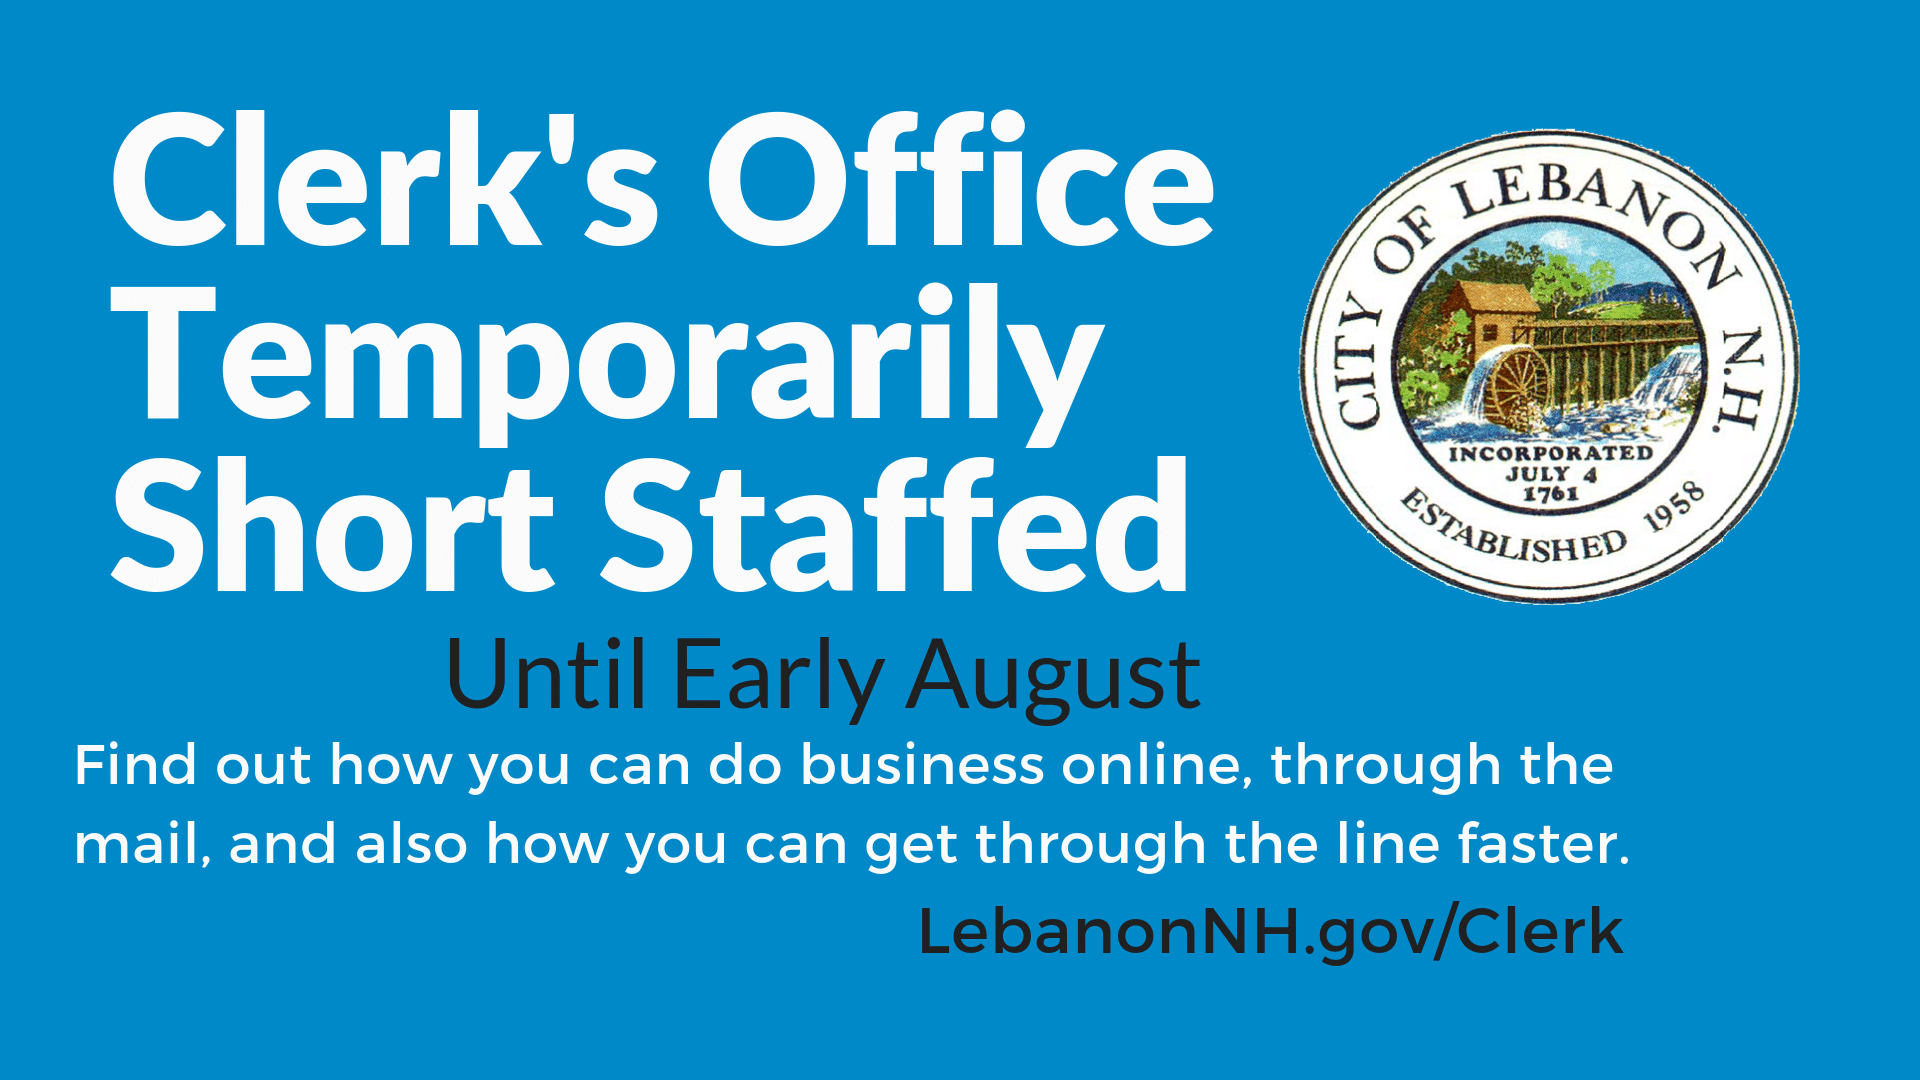 City Clerk's Office Short Staffed until early August